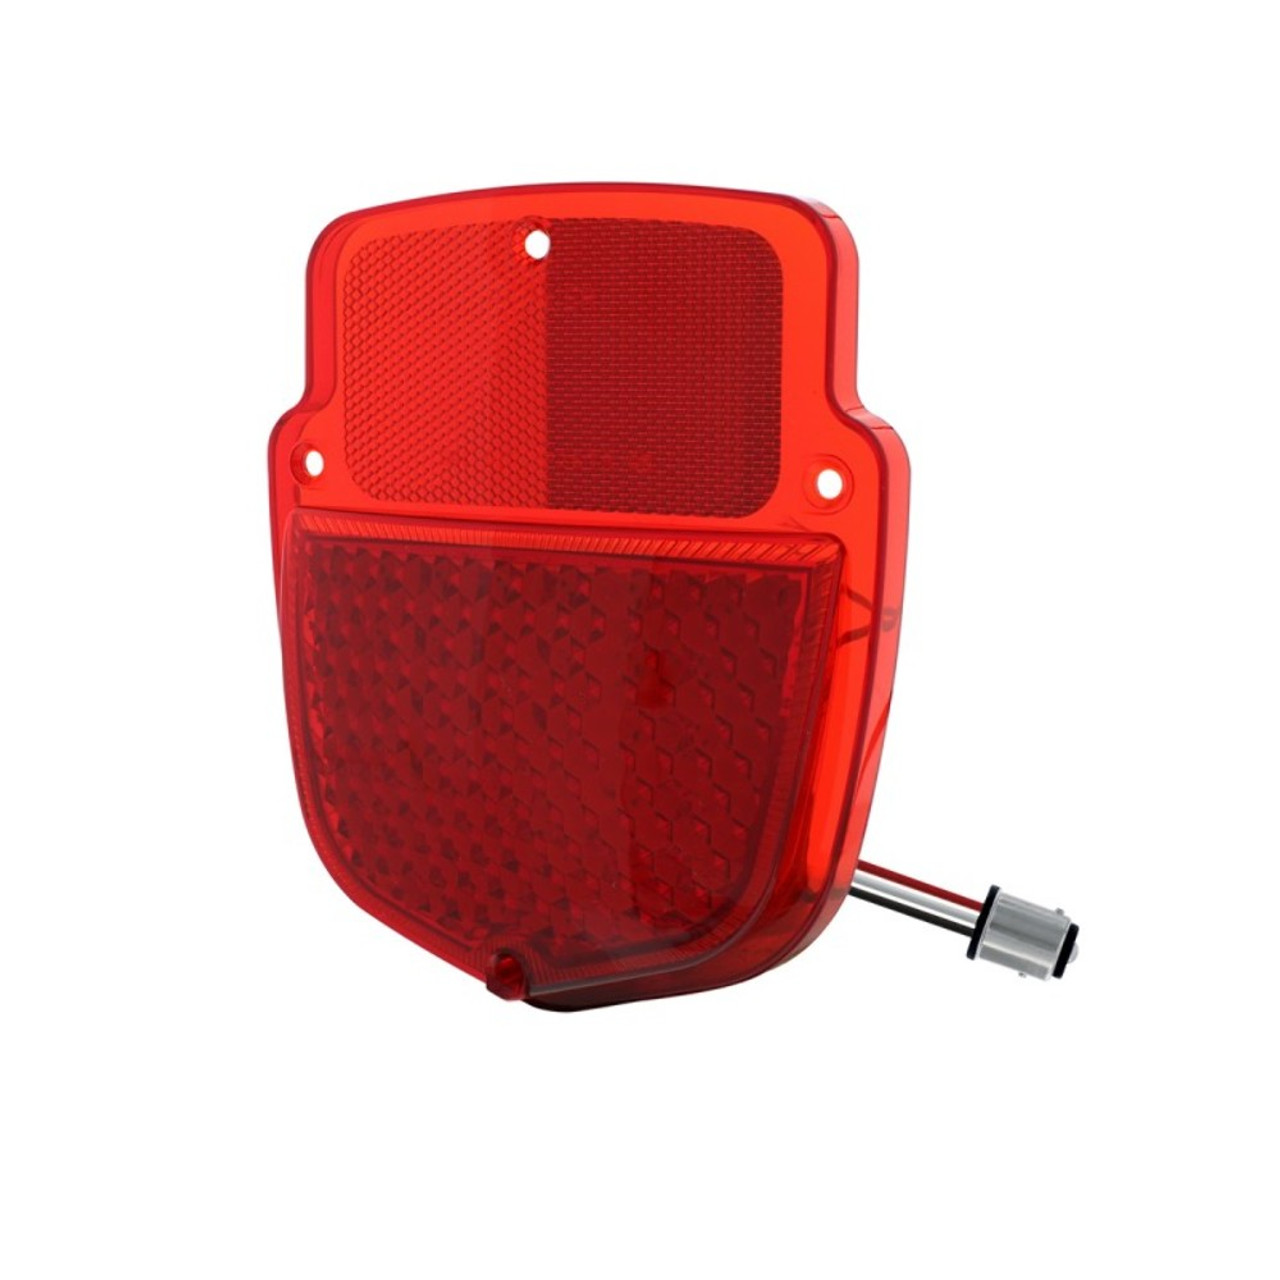 38 Red Led Tail Light For 1953-56 Ford Truck - Right Hand Side